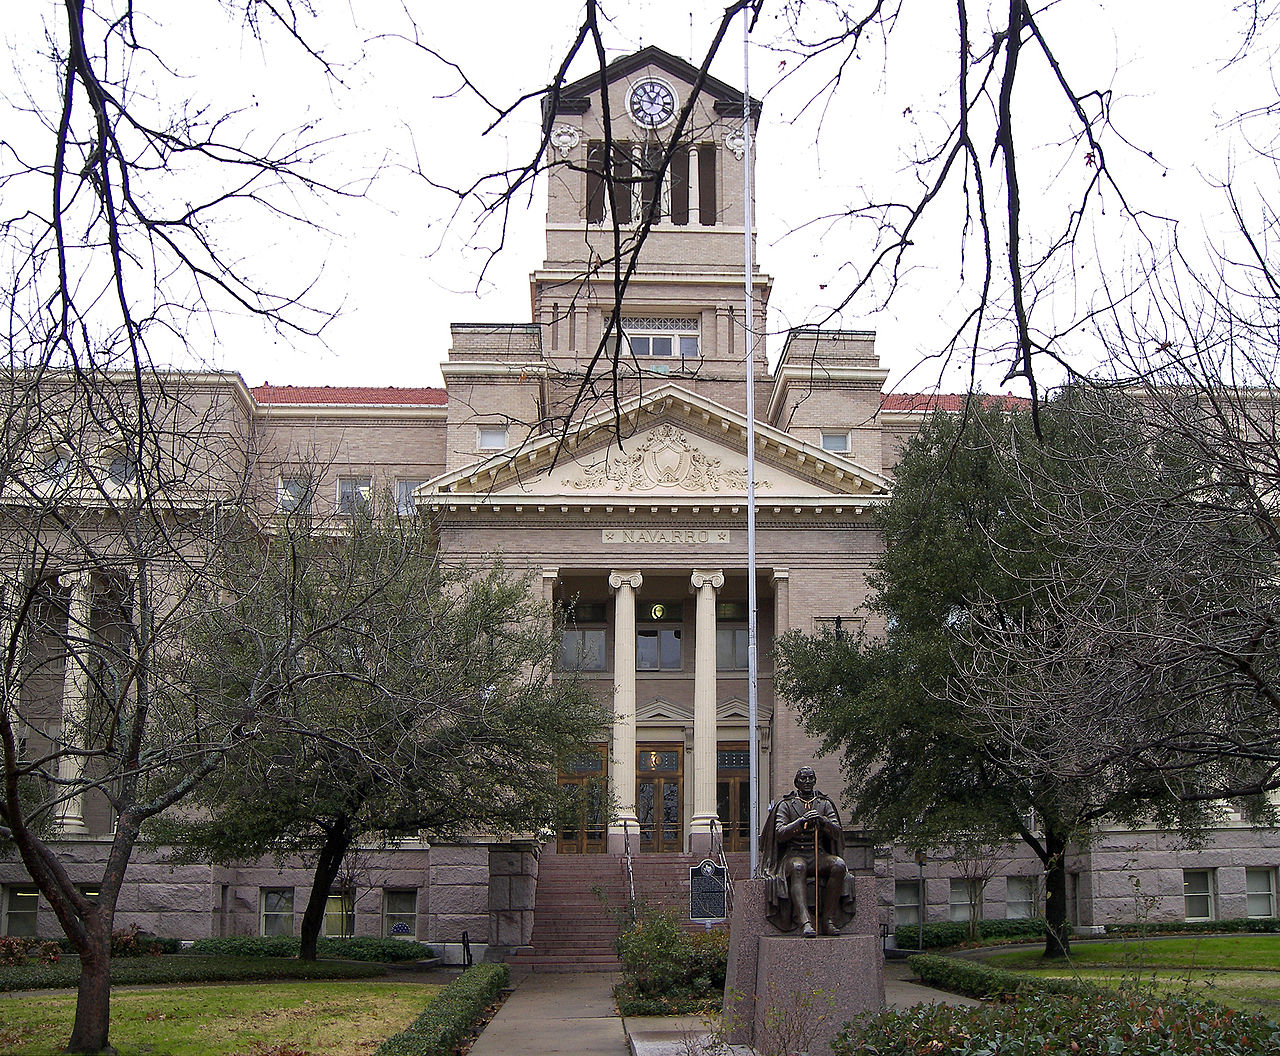 The Navarro County Courthouse was built in 1905 and is the fifth county courthouse at this location.